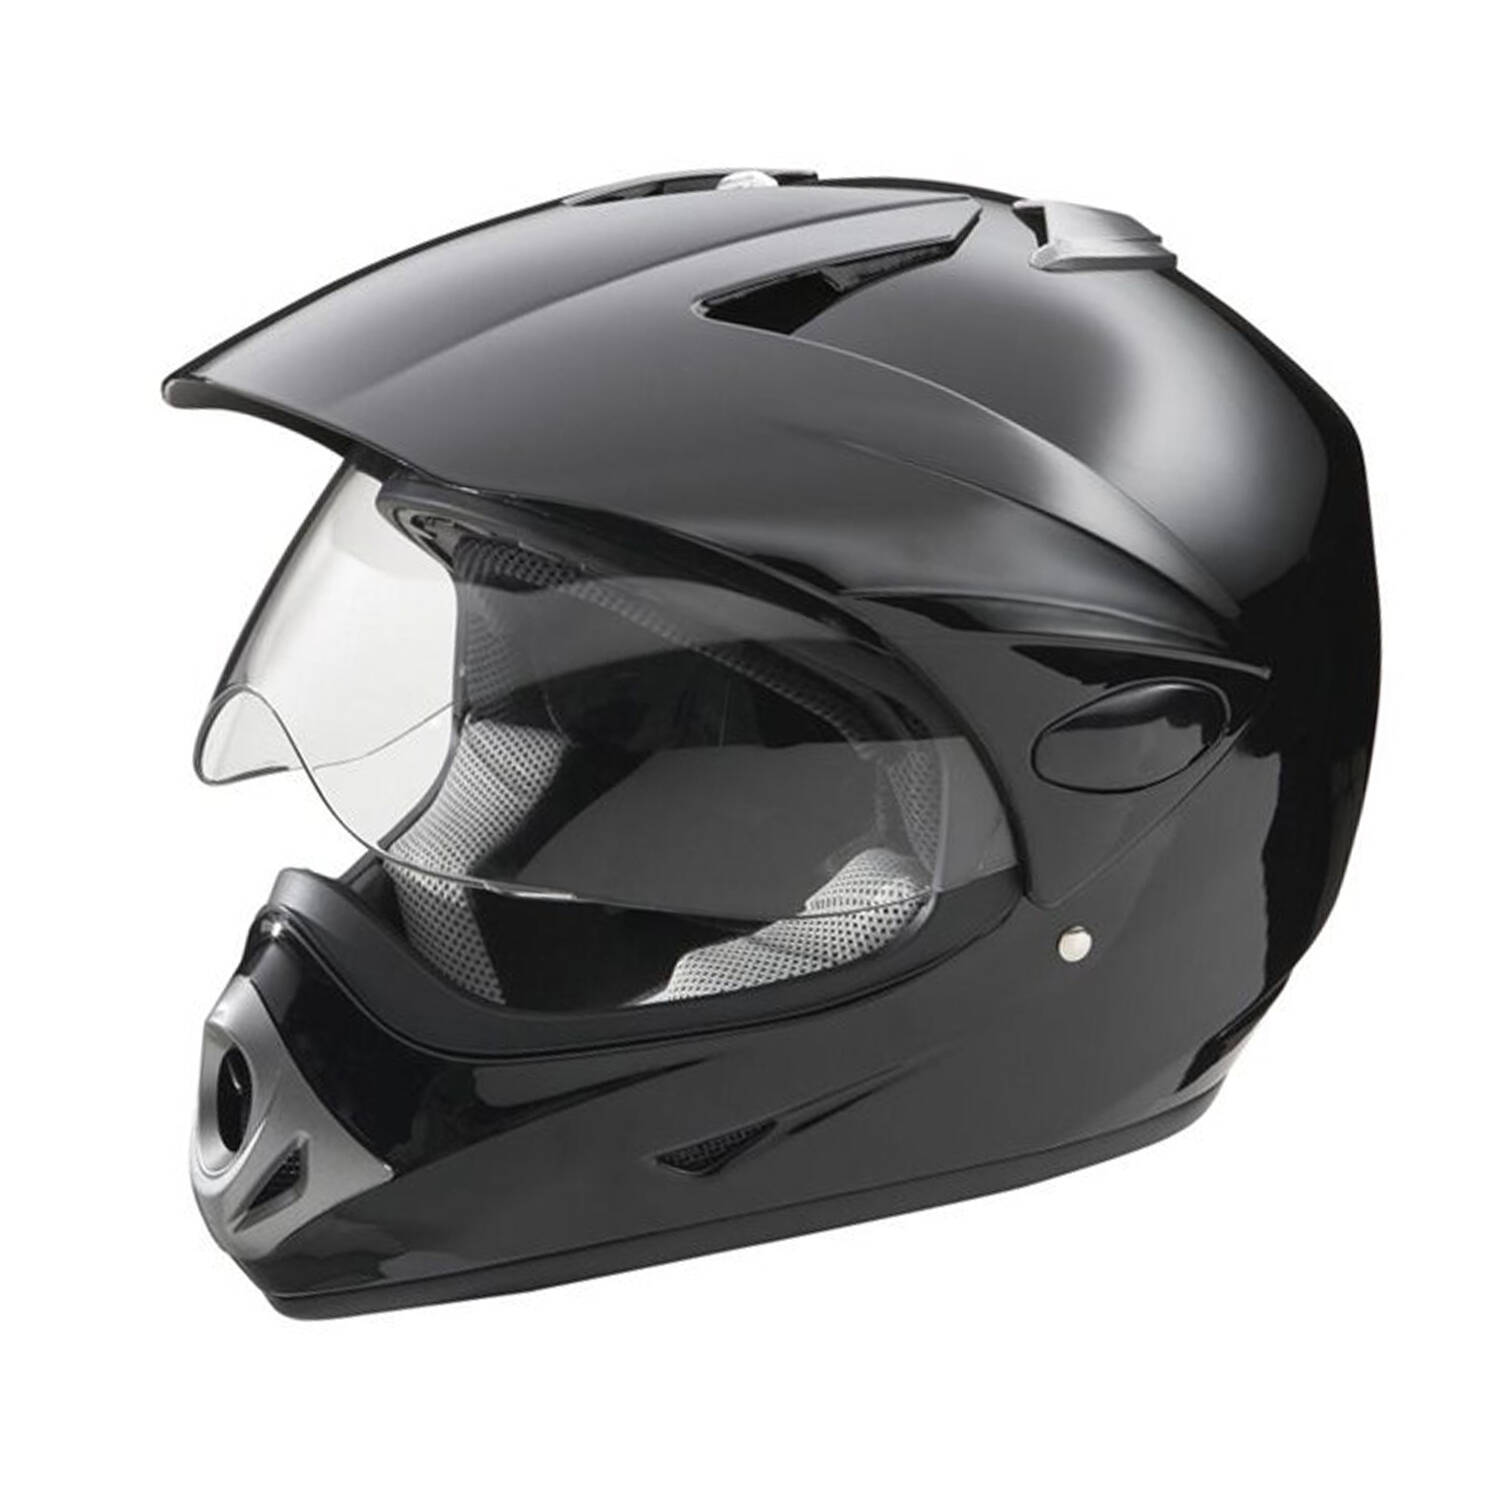 KTP Adult Full-Face Helmet with Scratch-Resistant Shield, Black